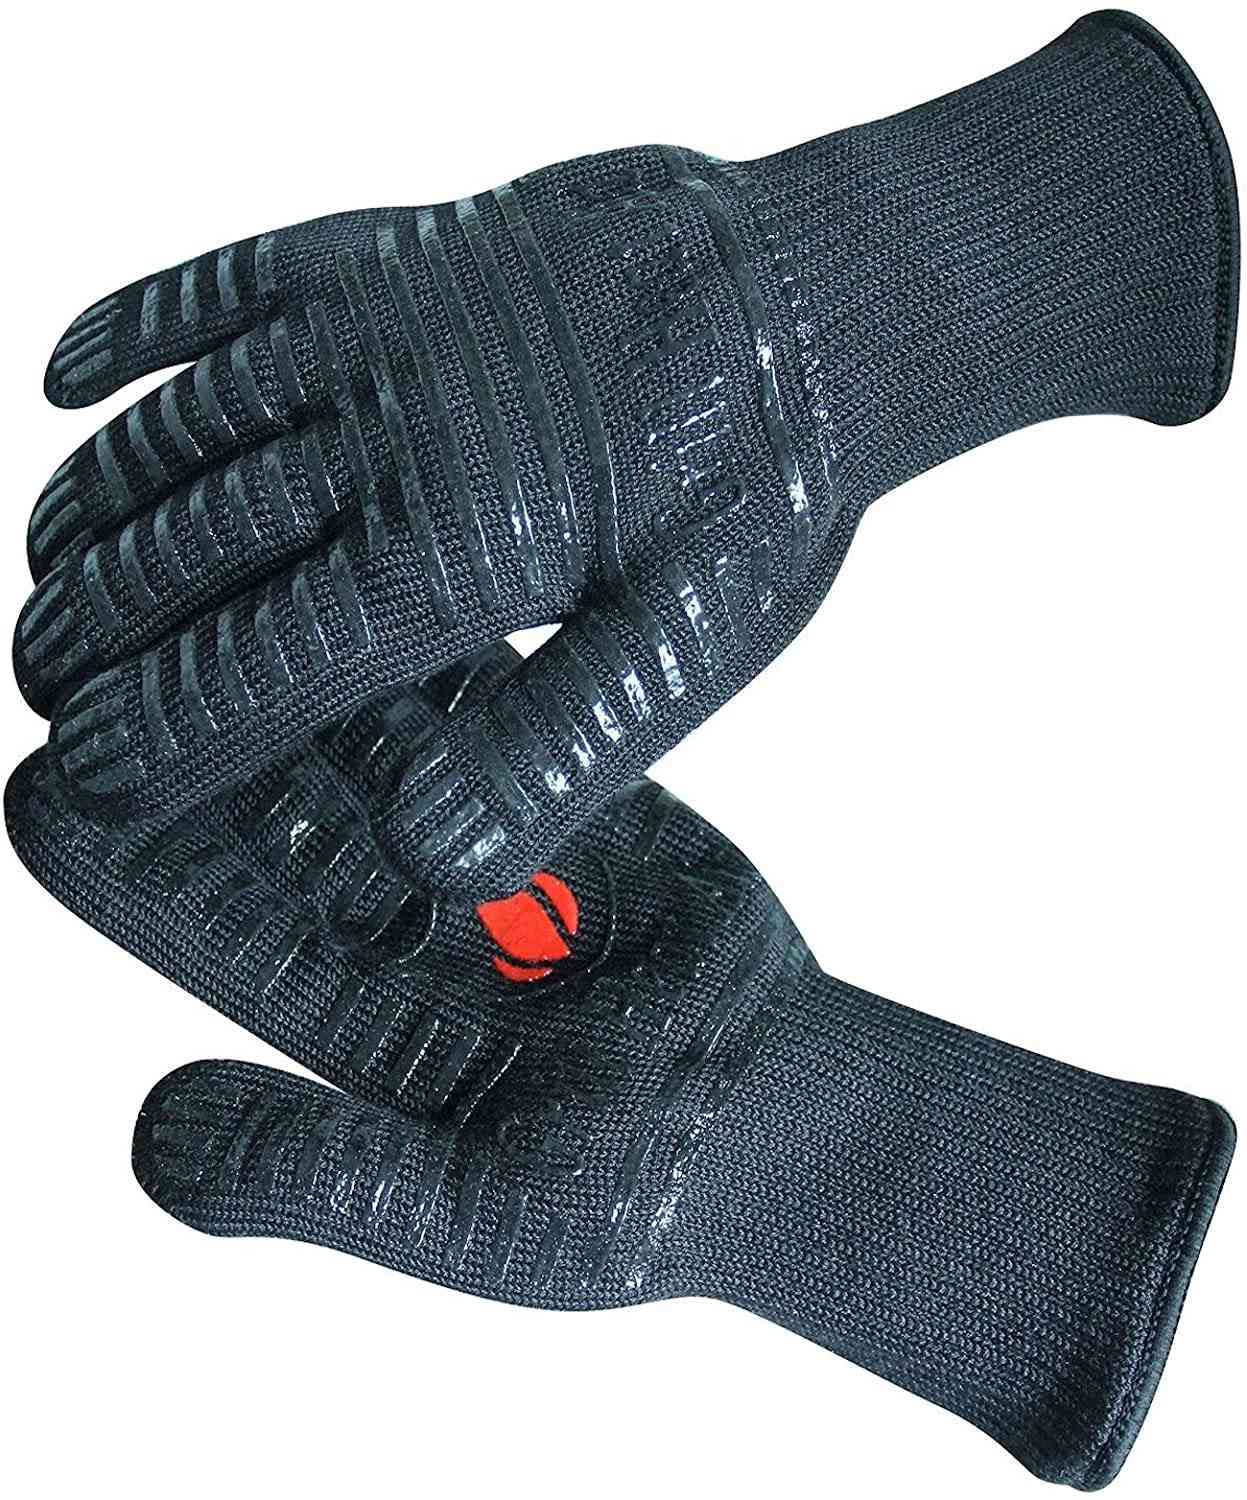 Grill Heat Aid Extreme Heat Resistant Grill Gloves